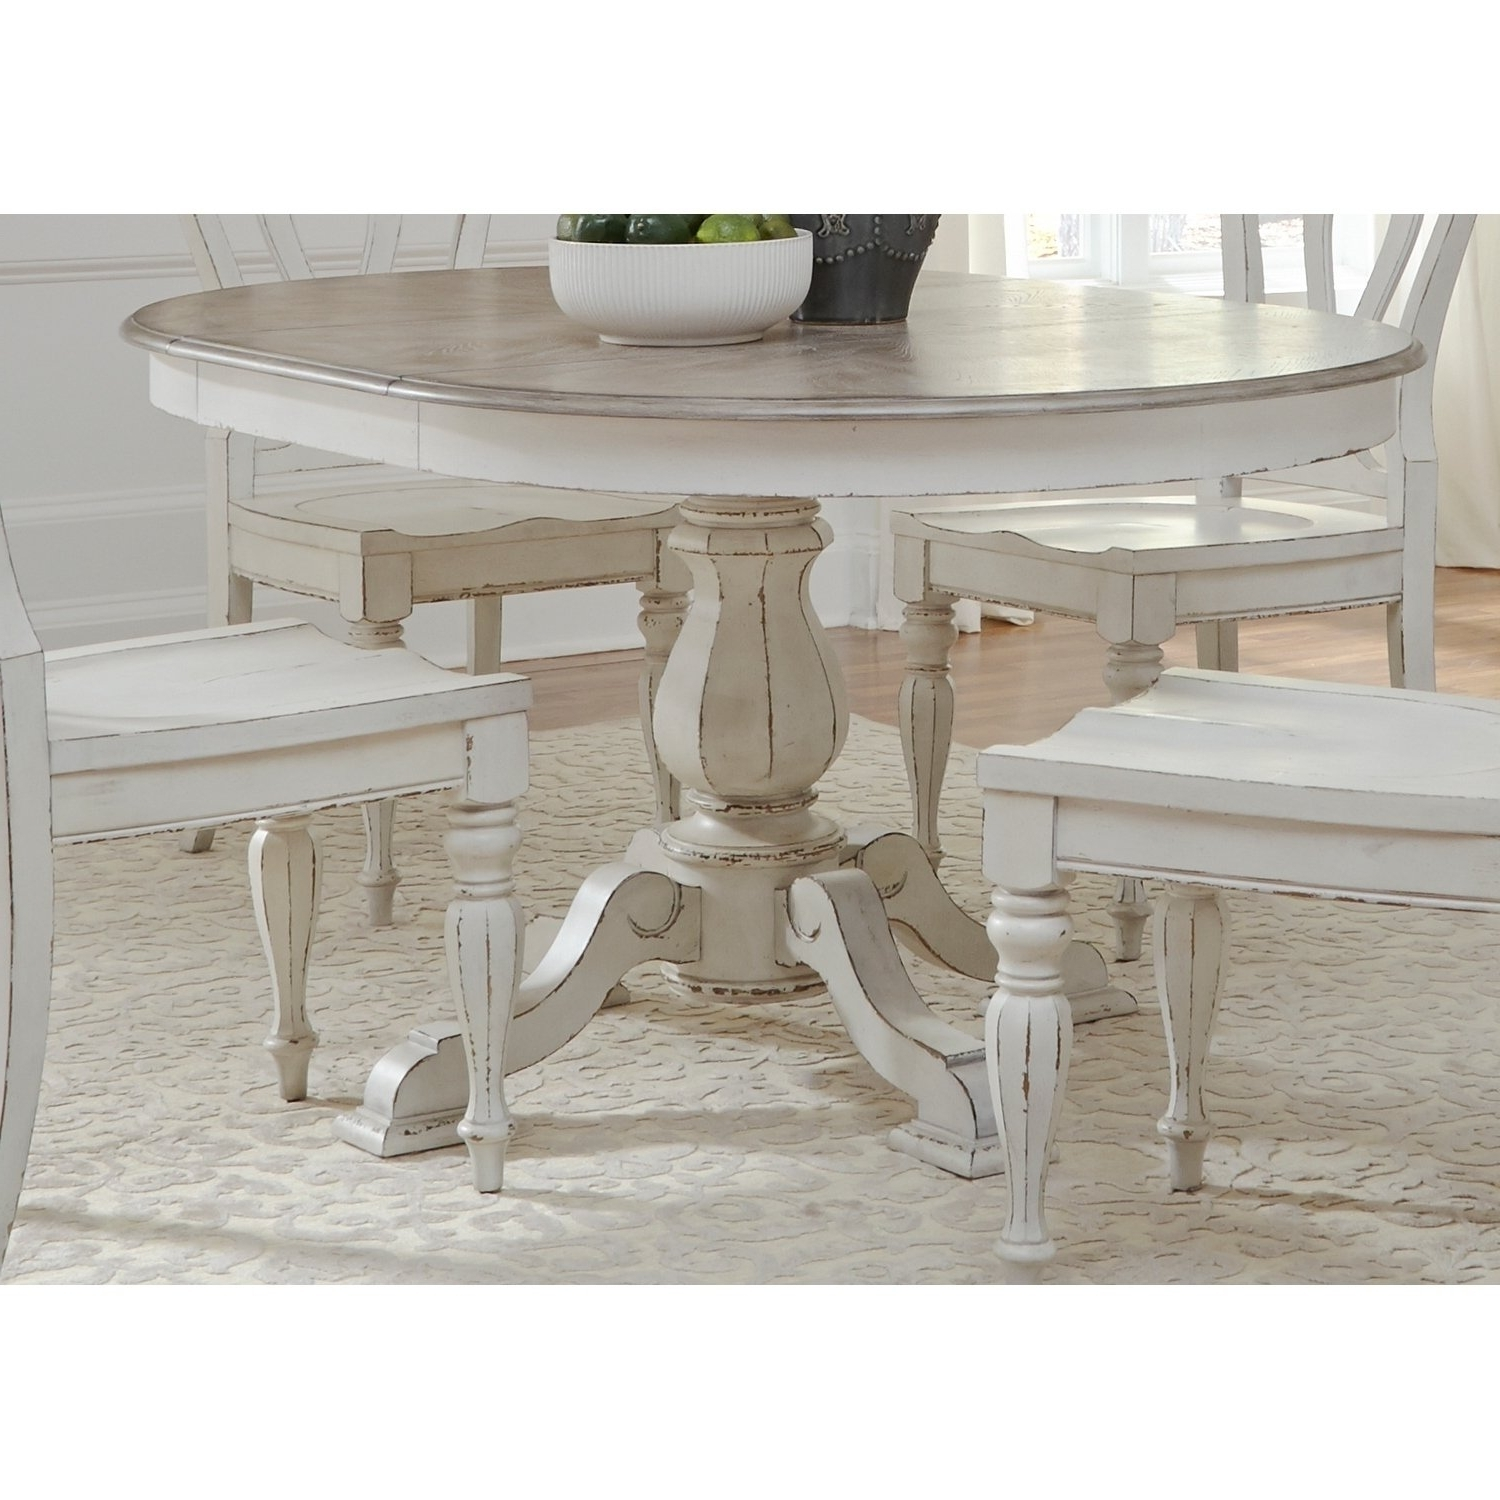 Shop Magnolia Manor Antique White Pedestal Table – Antique White Throughout Recent Magnolia Home English Country Oval Dining Tables (View 21 of 25)